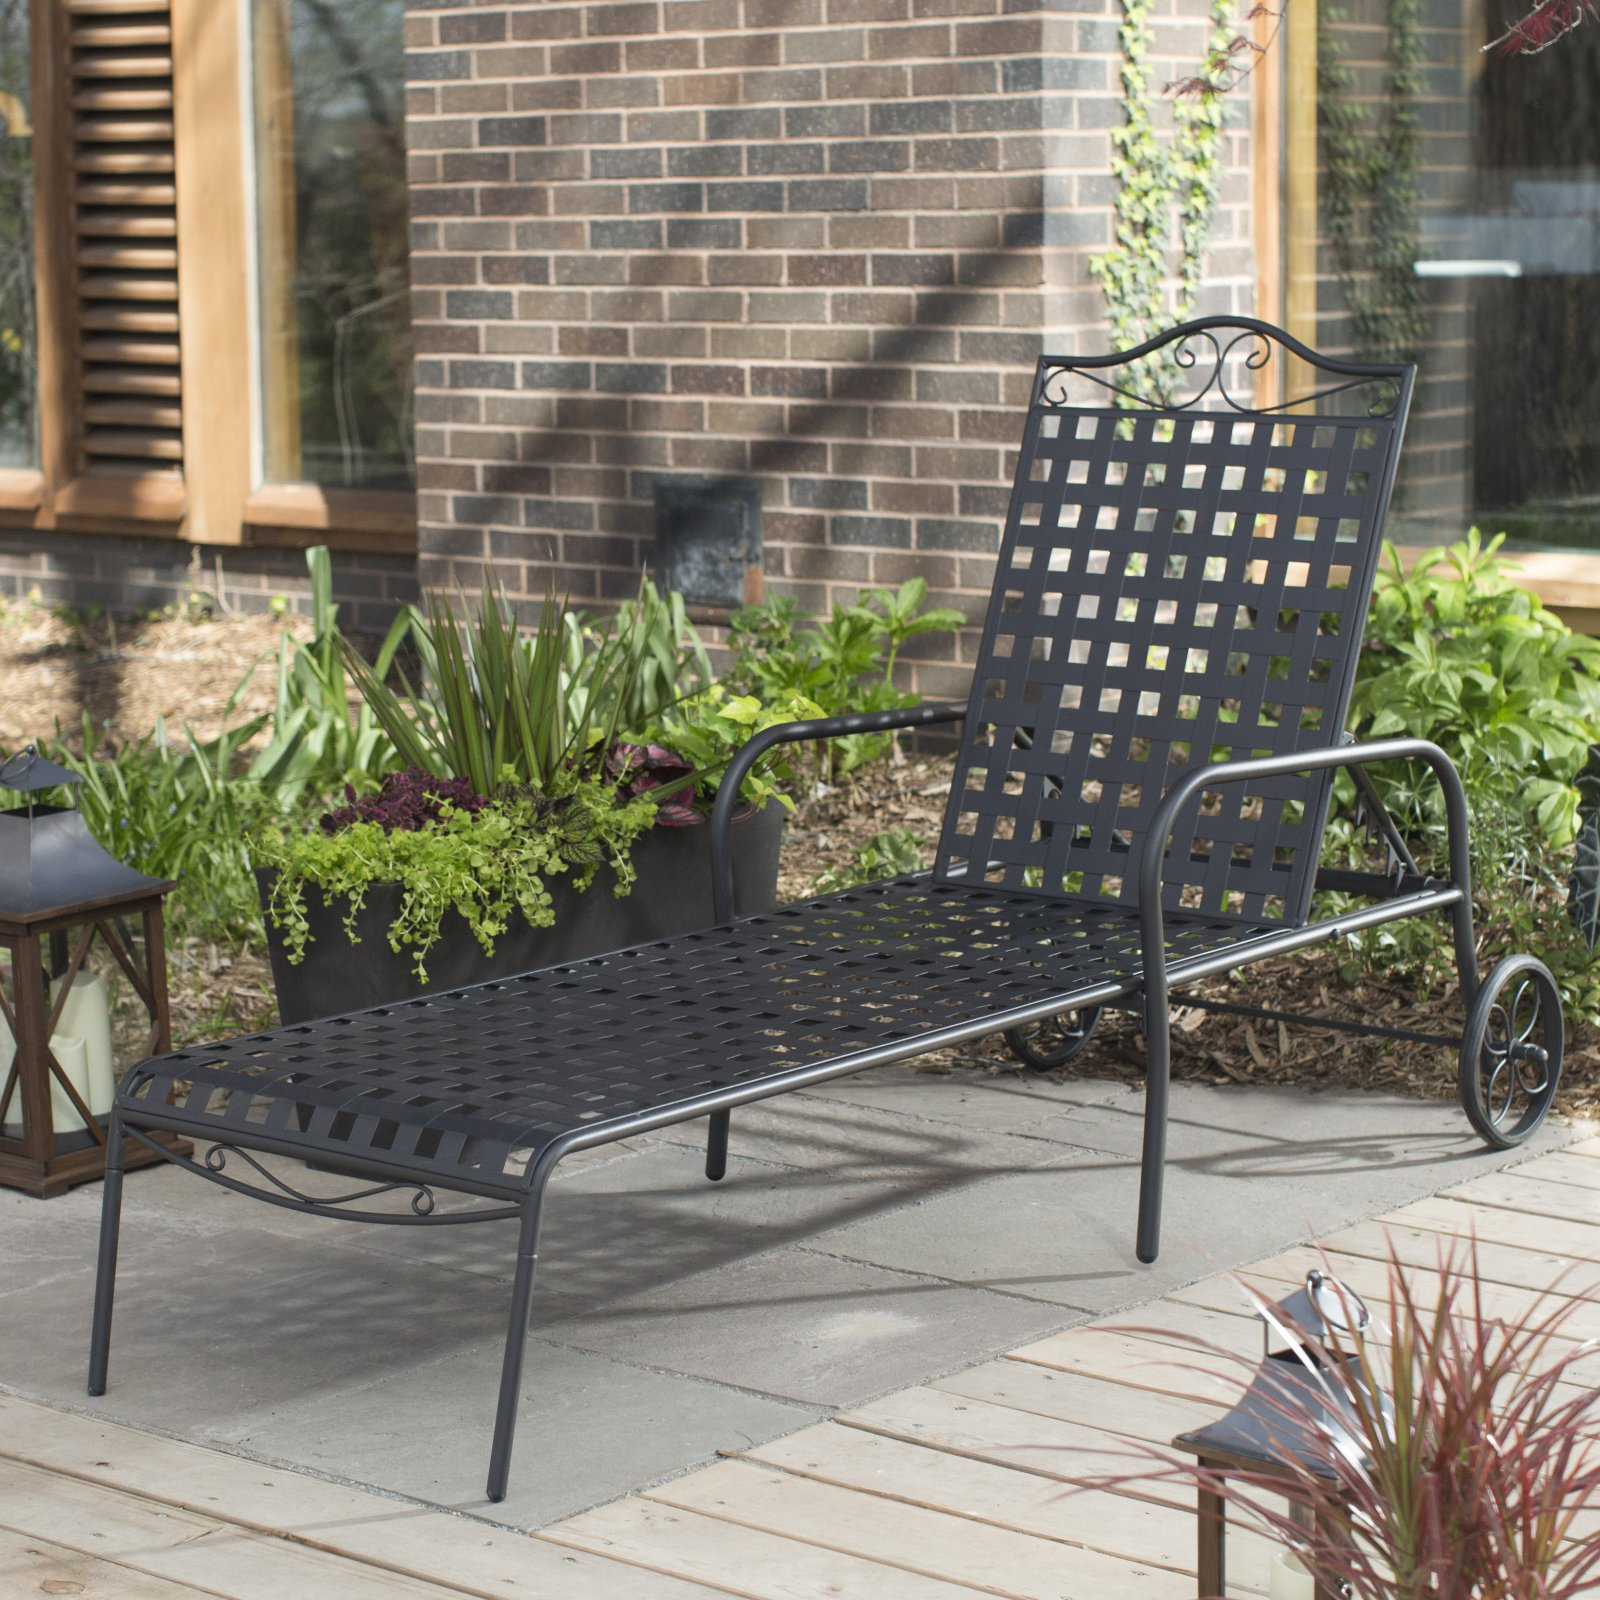 Belham Living Capri Wrought Iron Multi Position Single Outdoor Chaise Lounge Within Most Recent Multi Position Iron Chaise Lounges (Gallery 3 of 25)